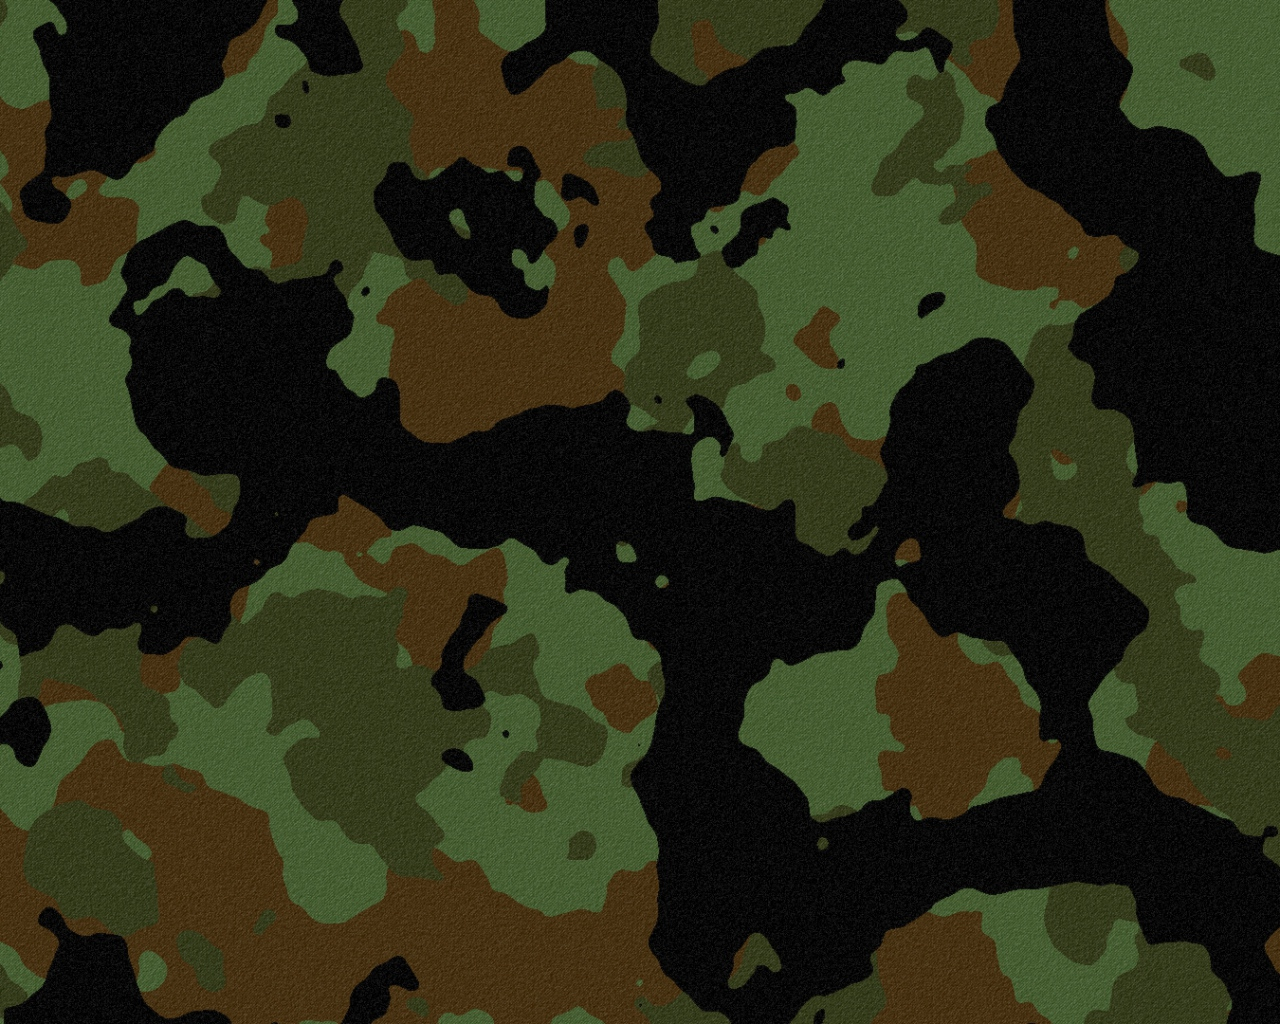 green military texture wallpapers camouflage background pattern backgrounds screen phone hd desktop wallpapersin4k